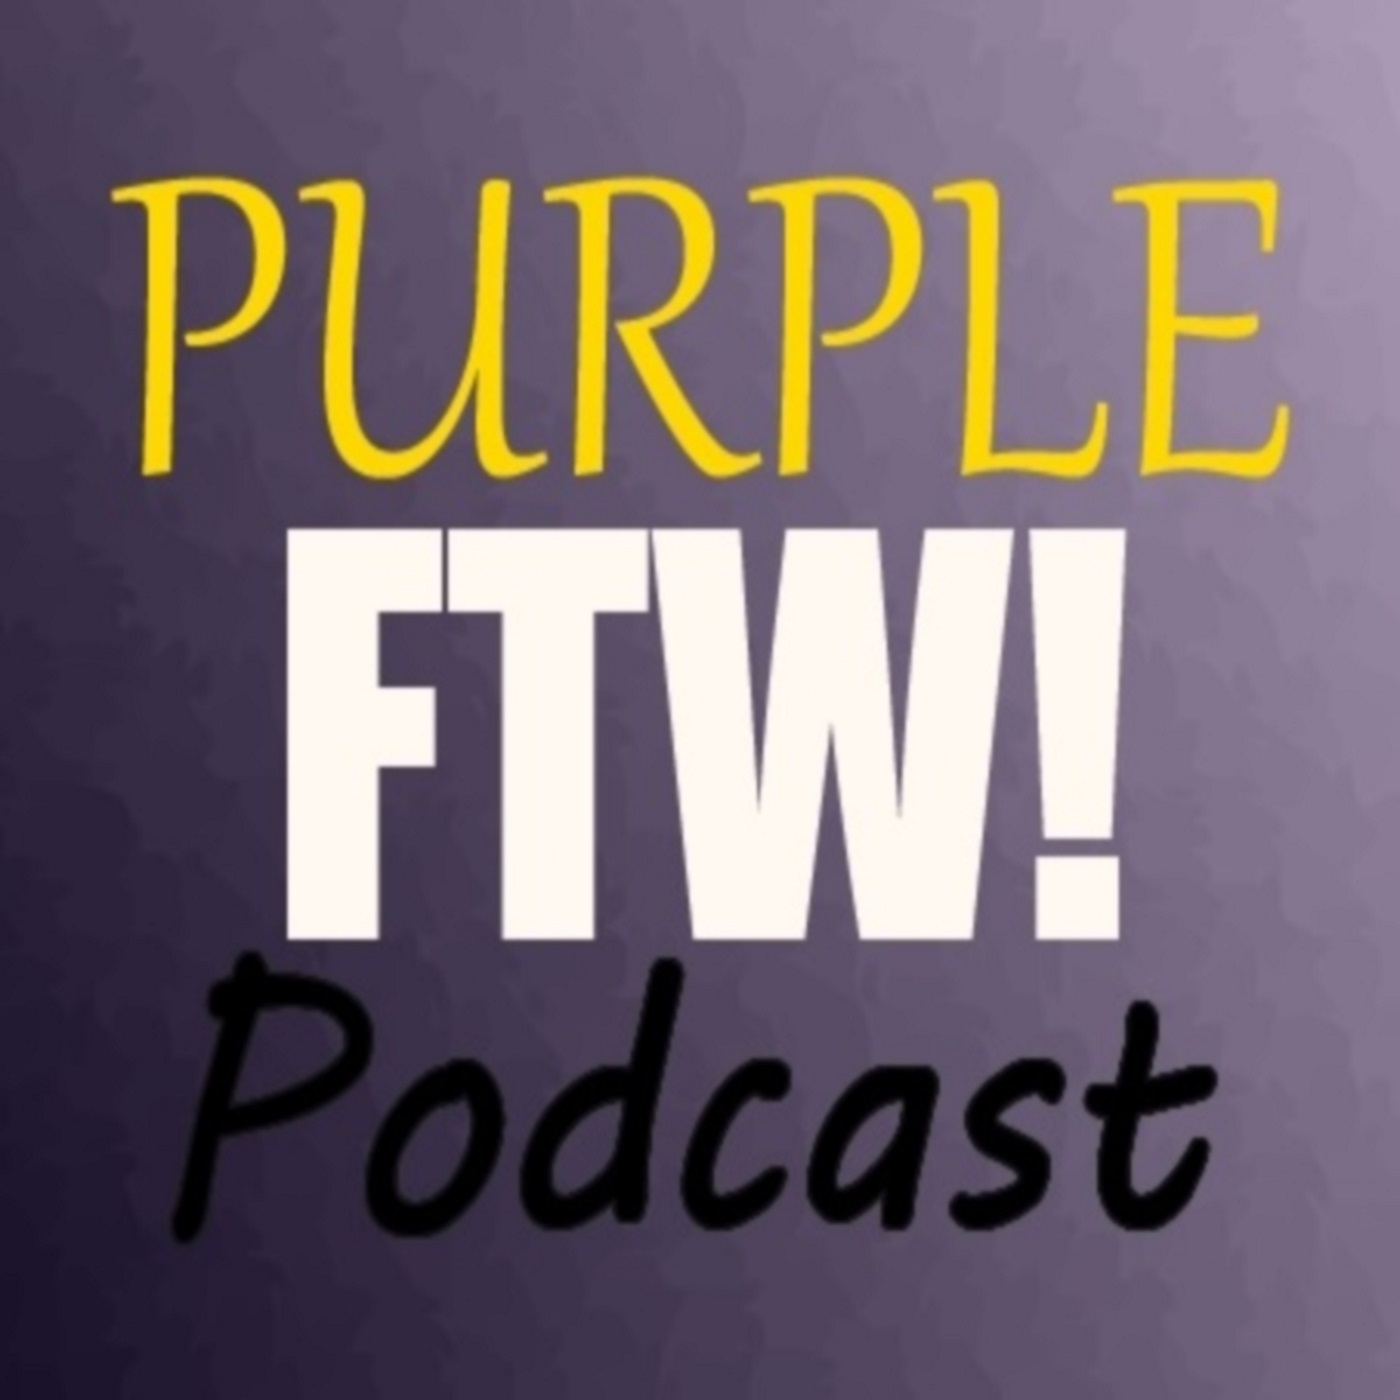 Purple FTW! Podcast show art